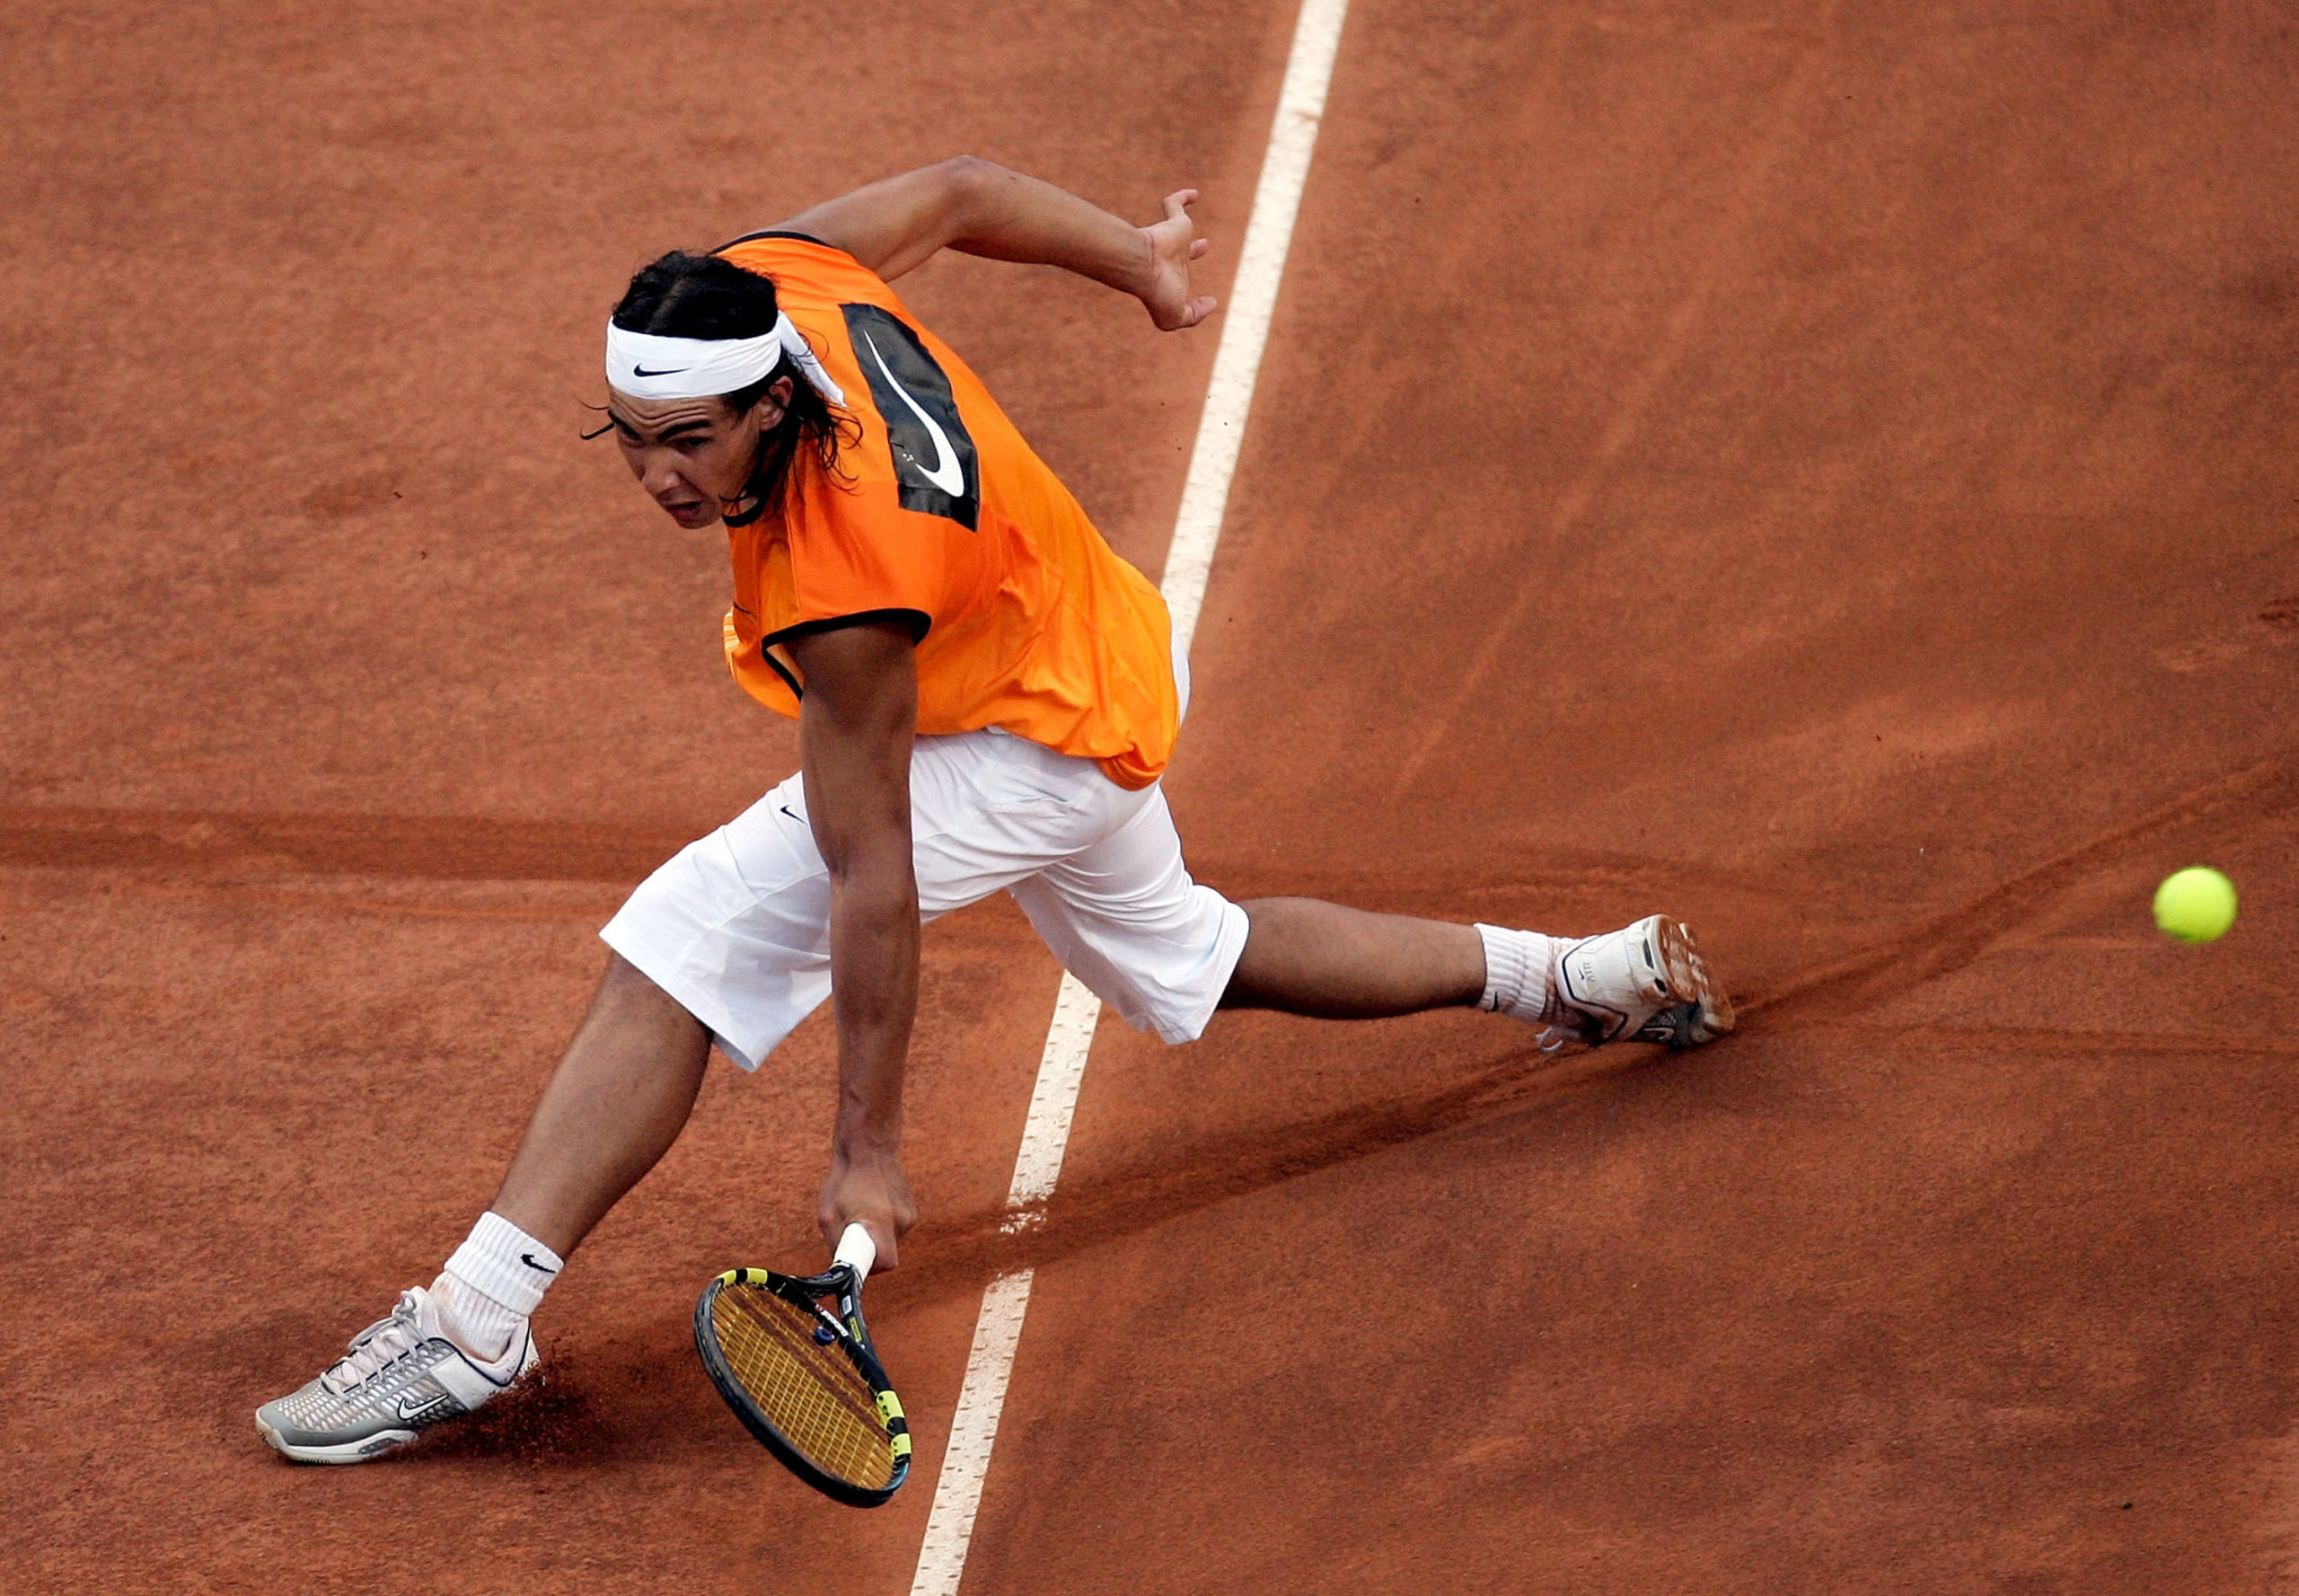 Nadal playing scaled